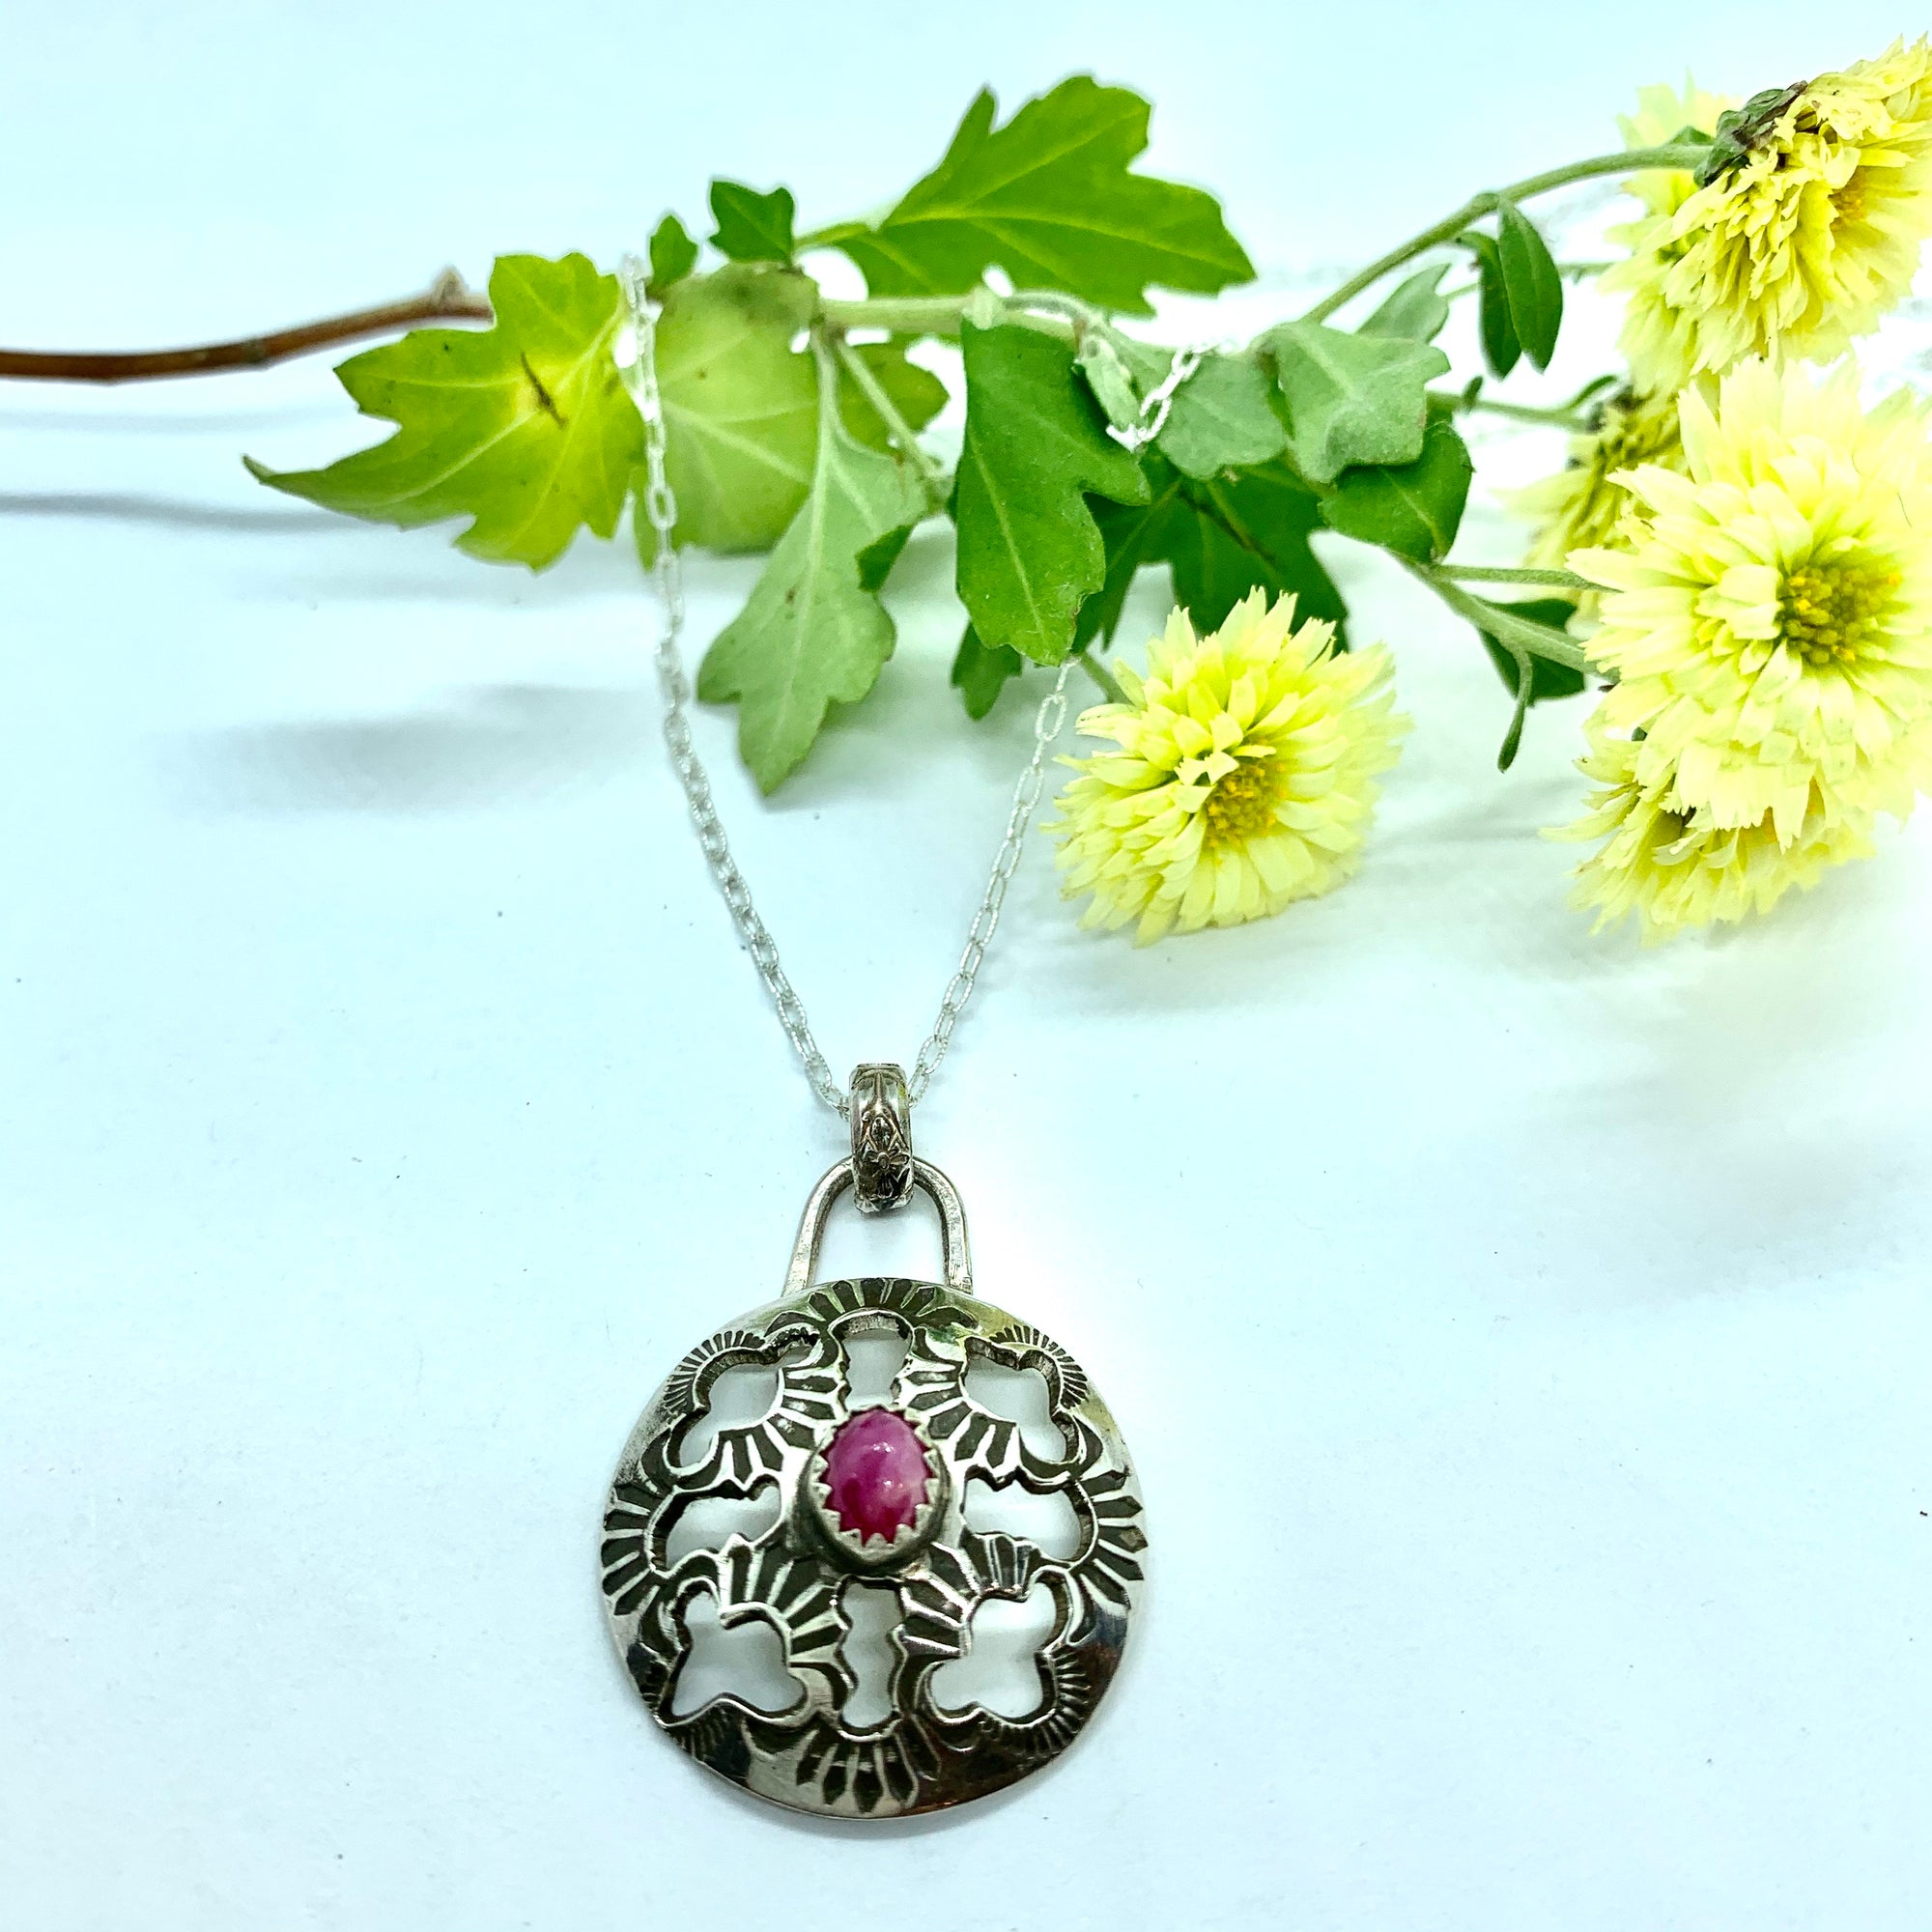 Ruby Leather and Lace Stevie Nicks Necklace in Sterling